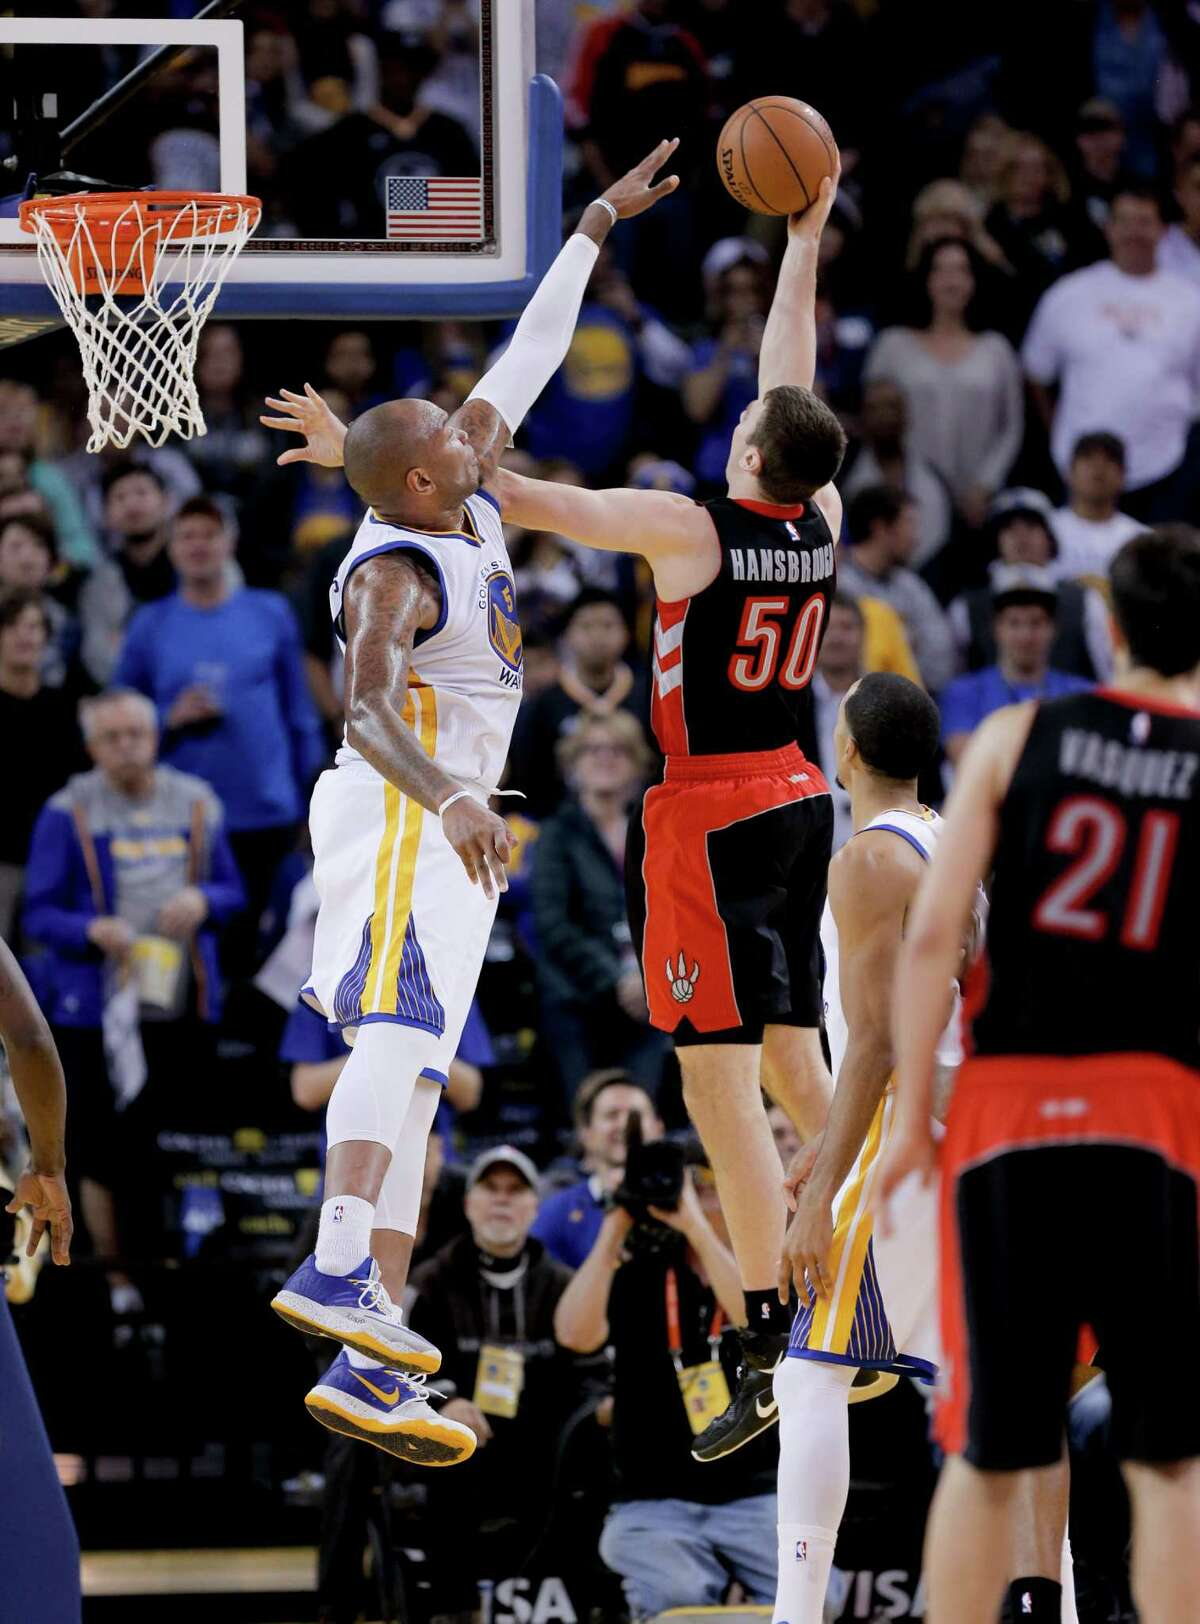 Warriors' Andre Iguodala, 9 defends against the Raptors' Tyler Hansbrough, 50 during the second half, as the Golden State Warriors went on to beat the Toronto Raptors 126-105 in NBA action at Oracle Arena in Oakland, Calif., on Friday Jan. 2, 2015.